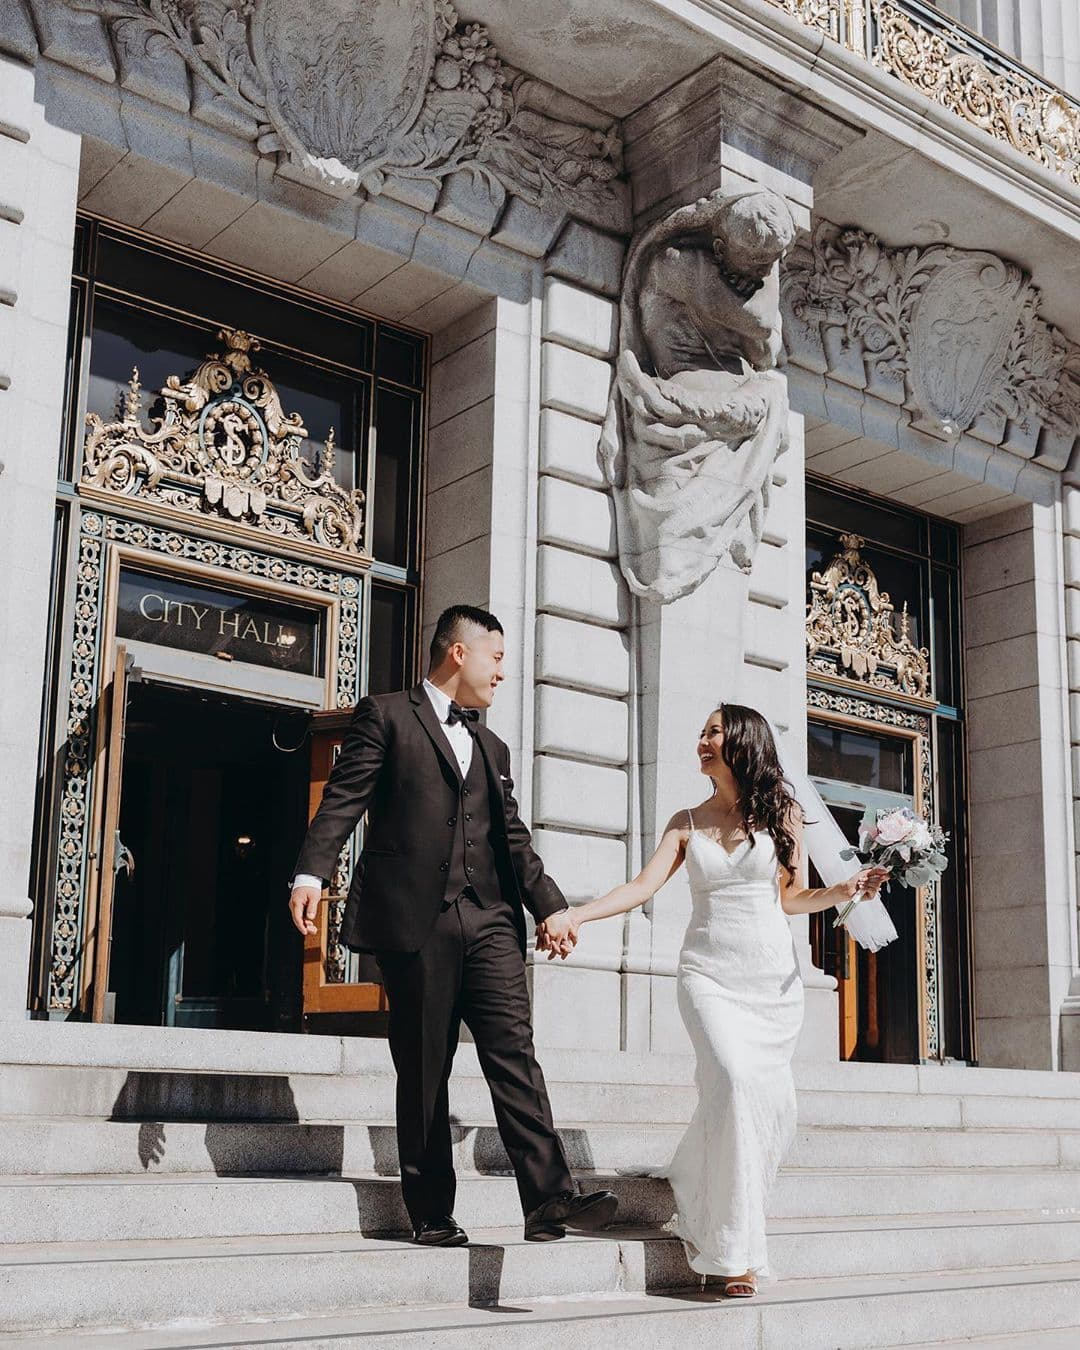 22 Prettiest City Hall Wedding Dresses And Courthouse Bridal Outfits